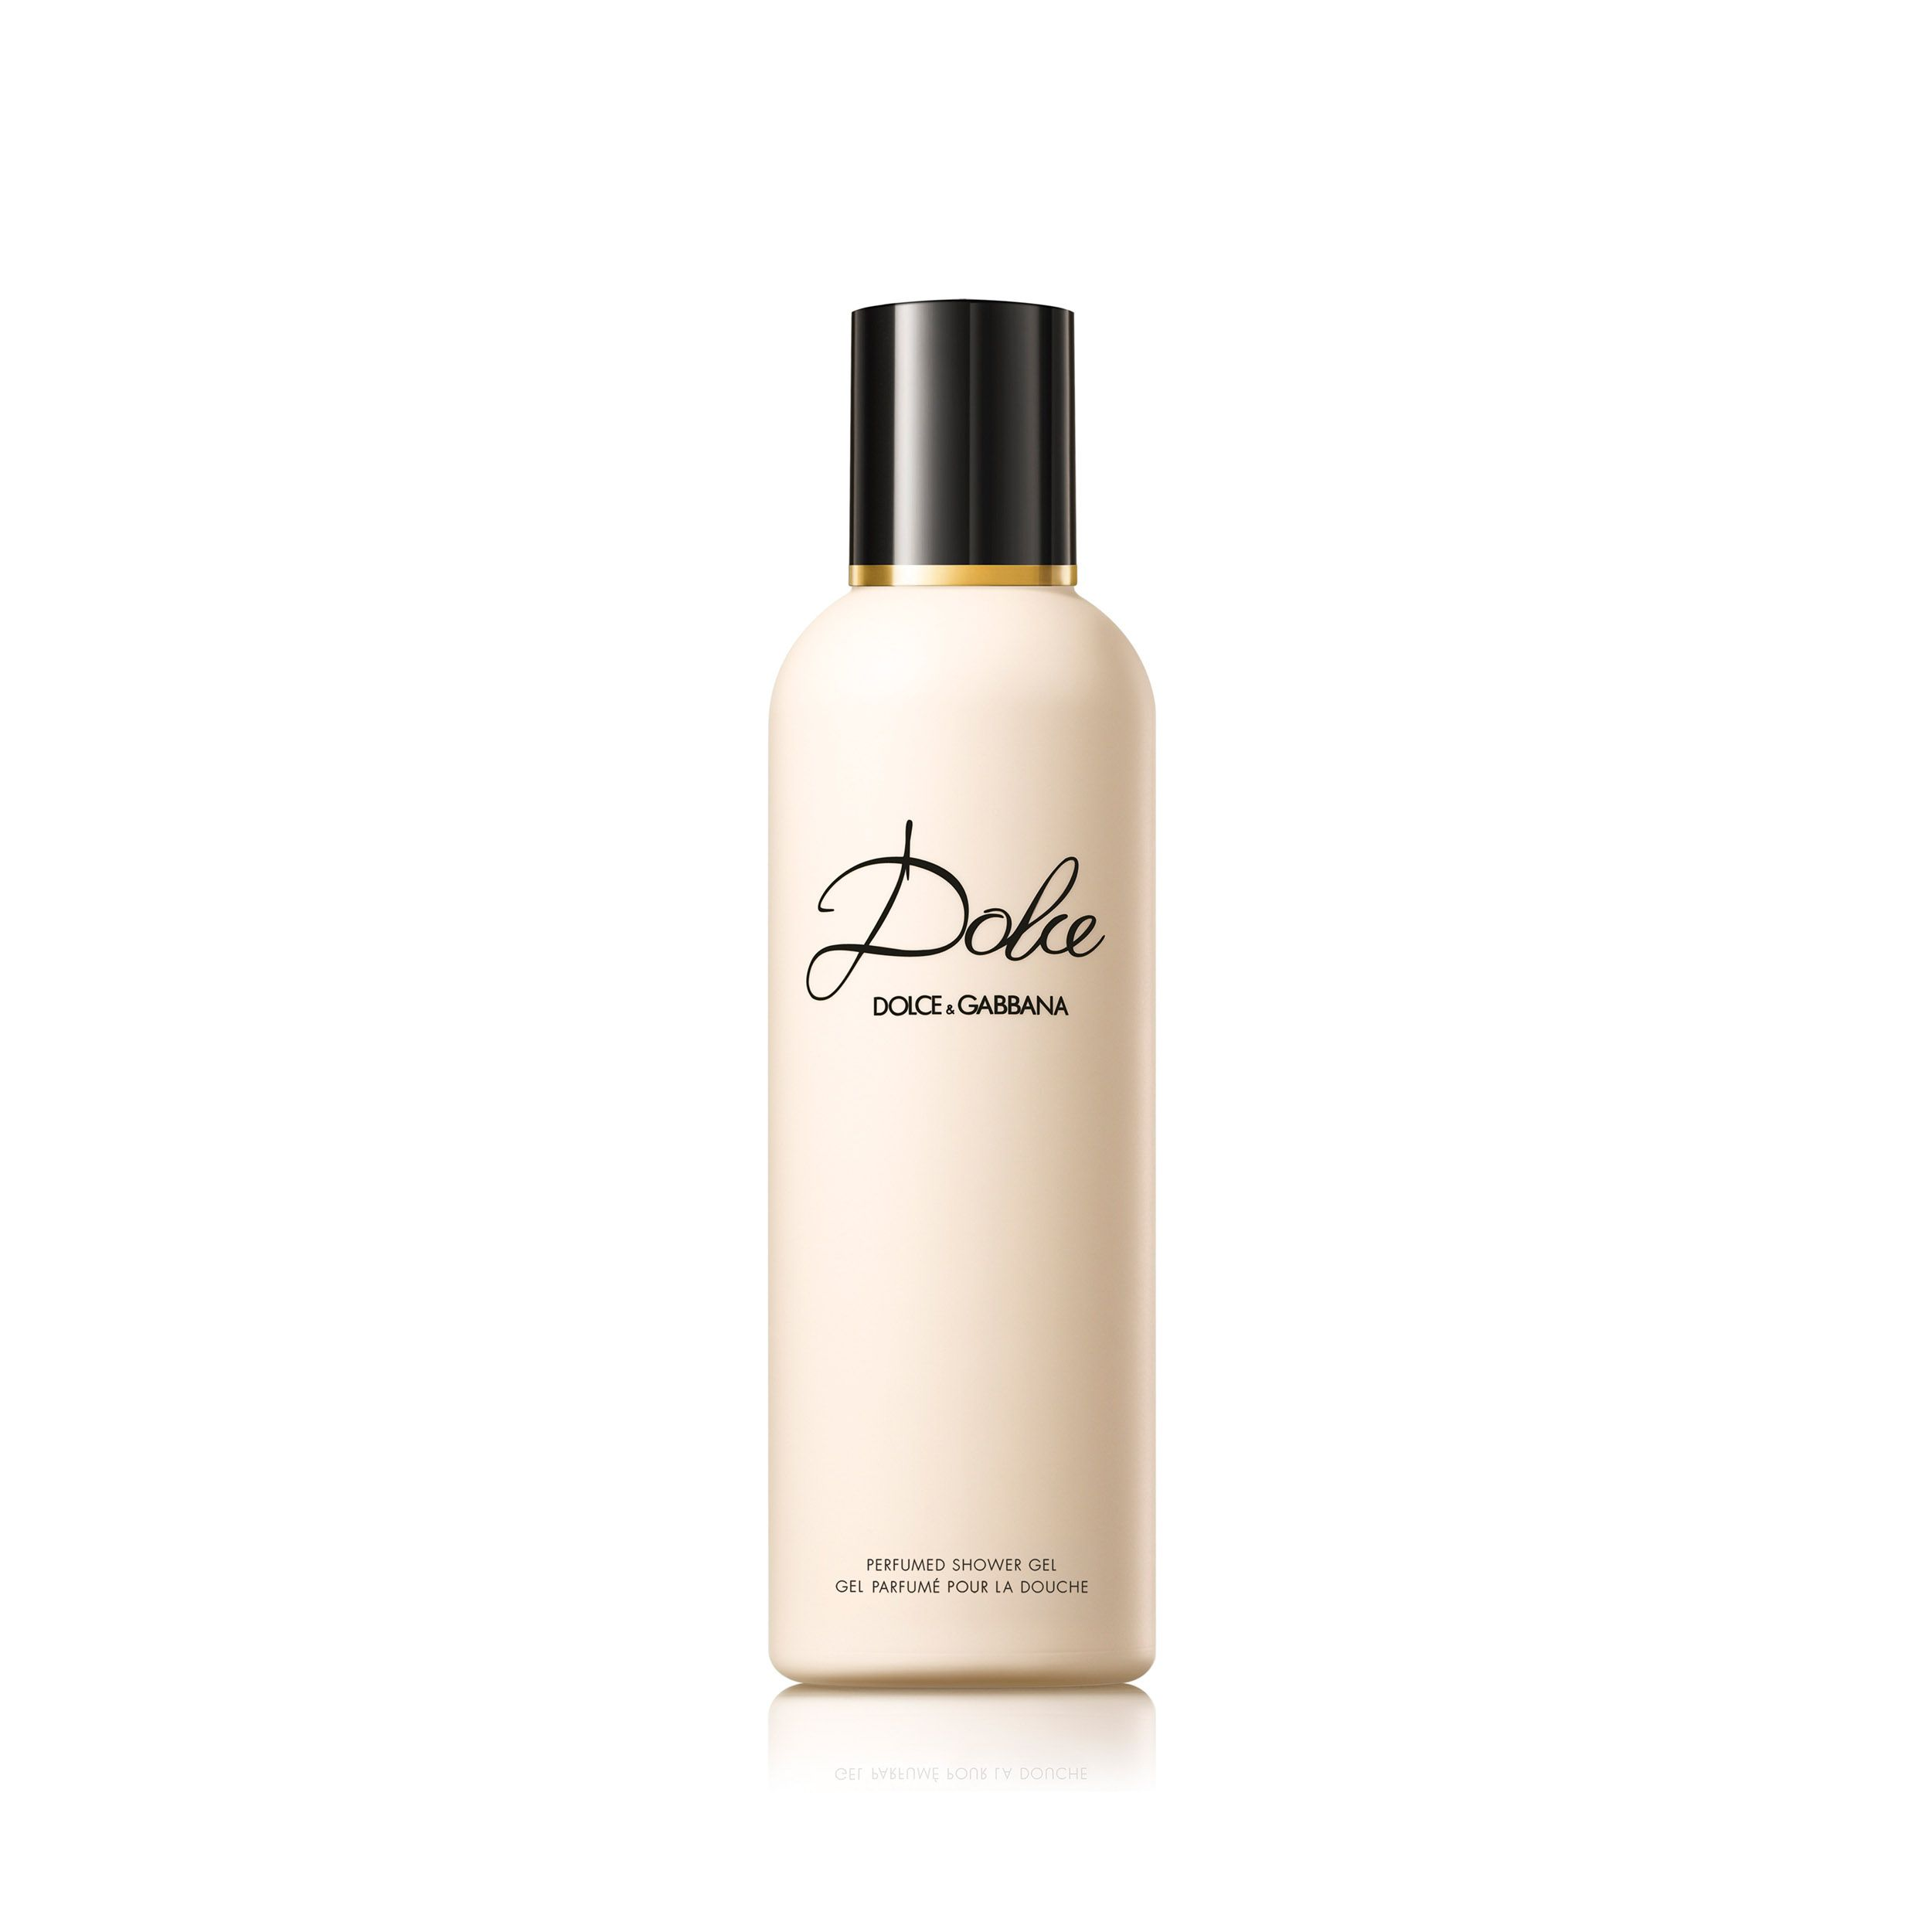 Dolce Shower Gel 200ml